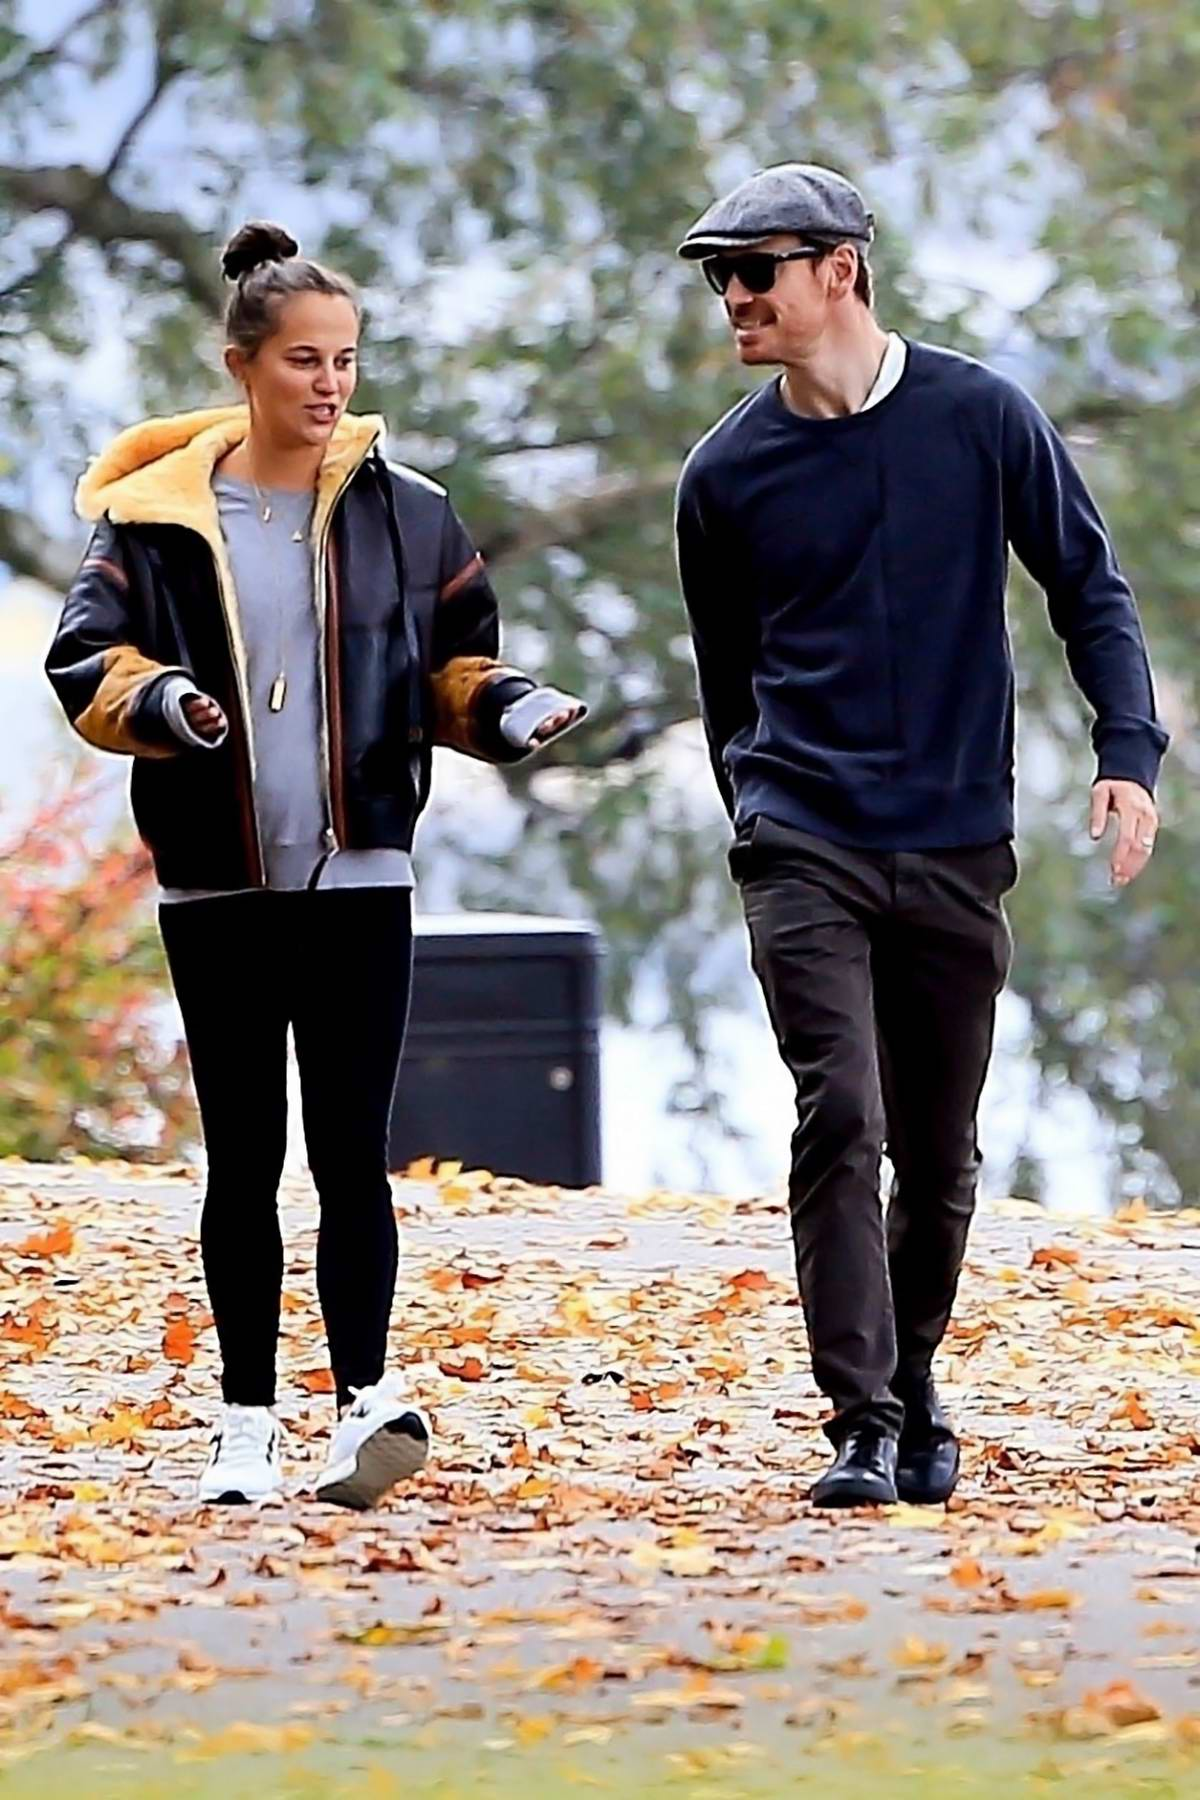 Alicia Vikander and Michael Fassbender enjoy a peaceful walk in Stockholm, Sweden